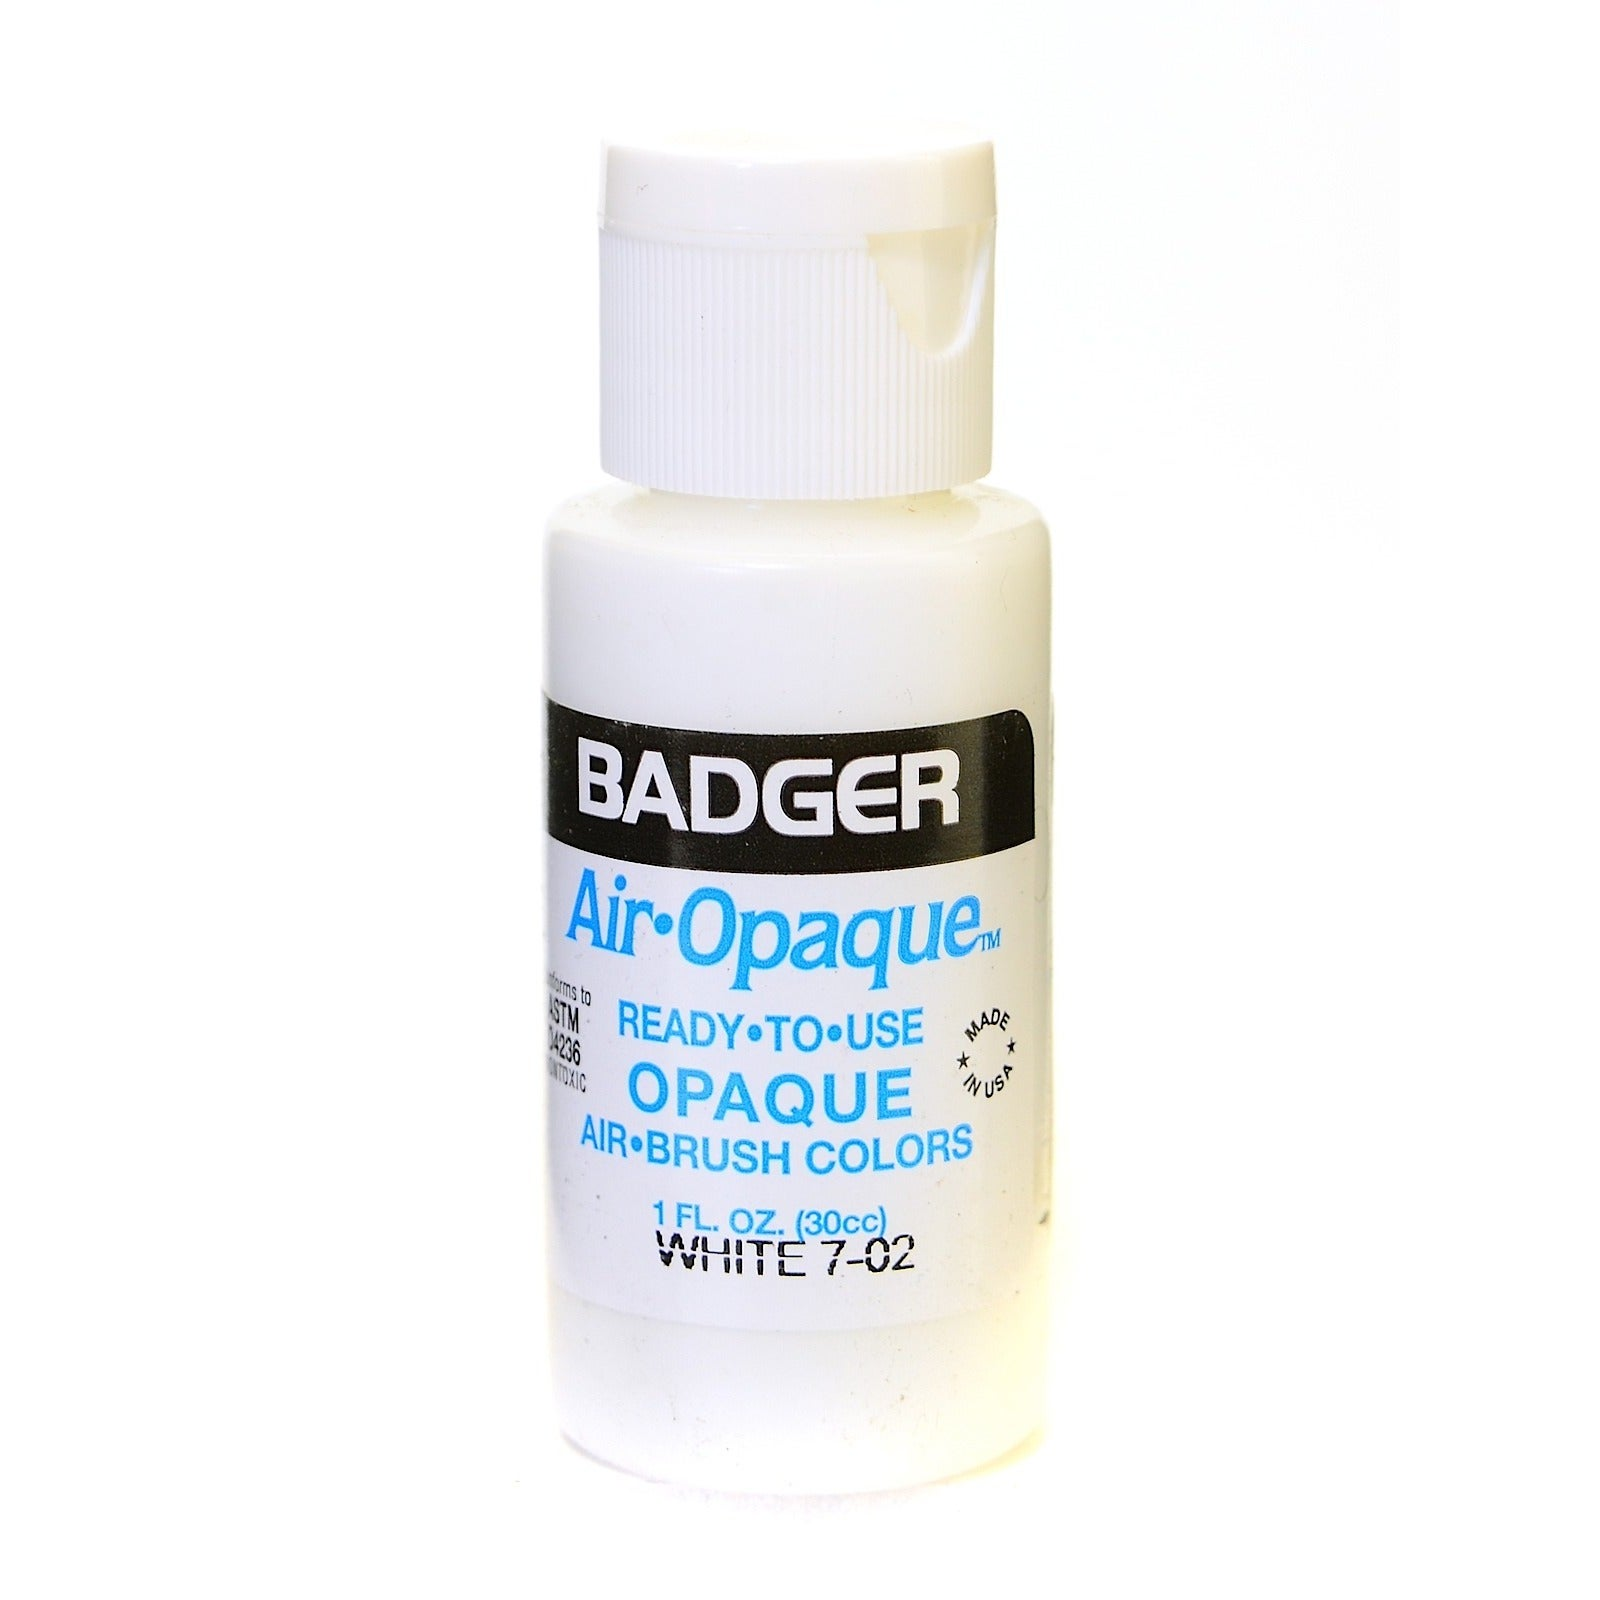 Badger Air Opaque Airbrush Color [Pack of 5] (7-02-5), White